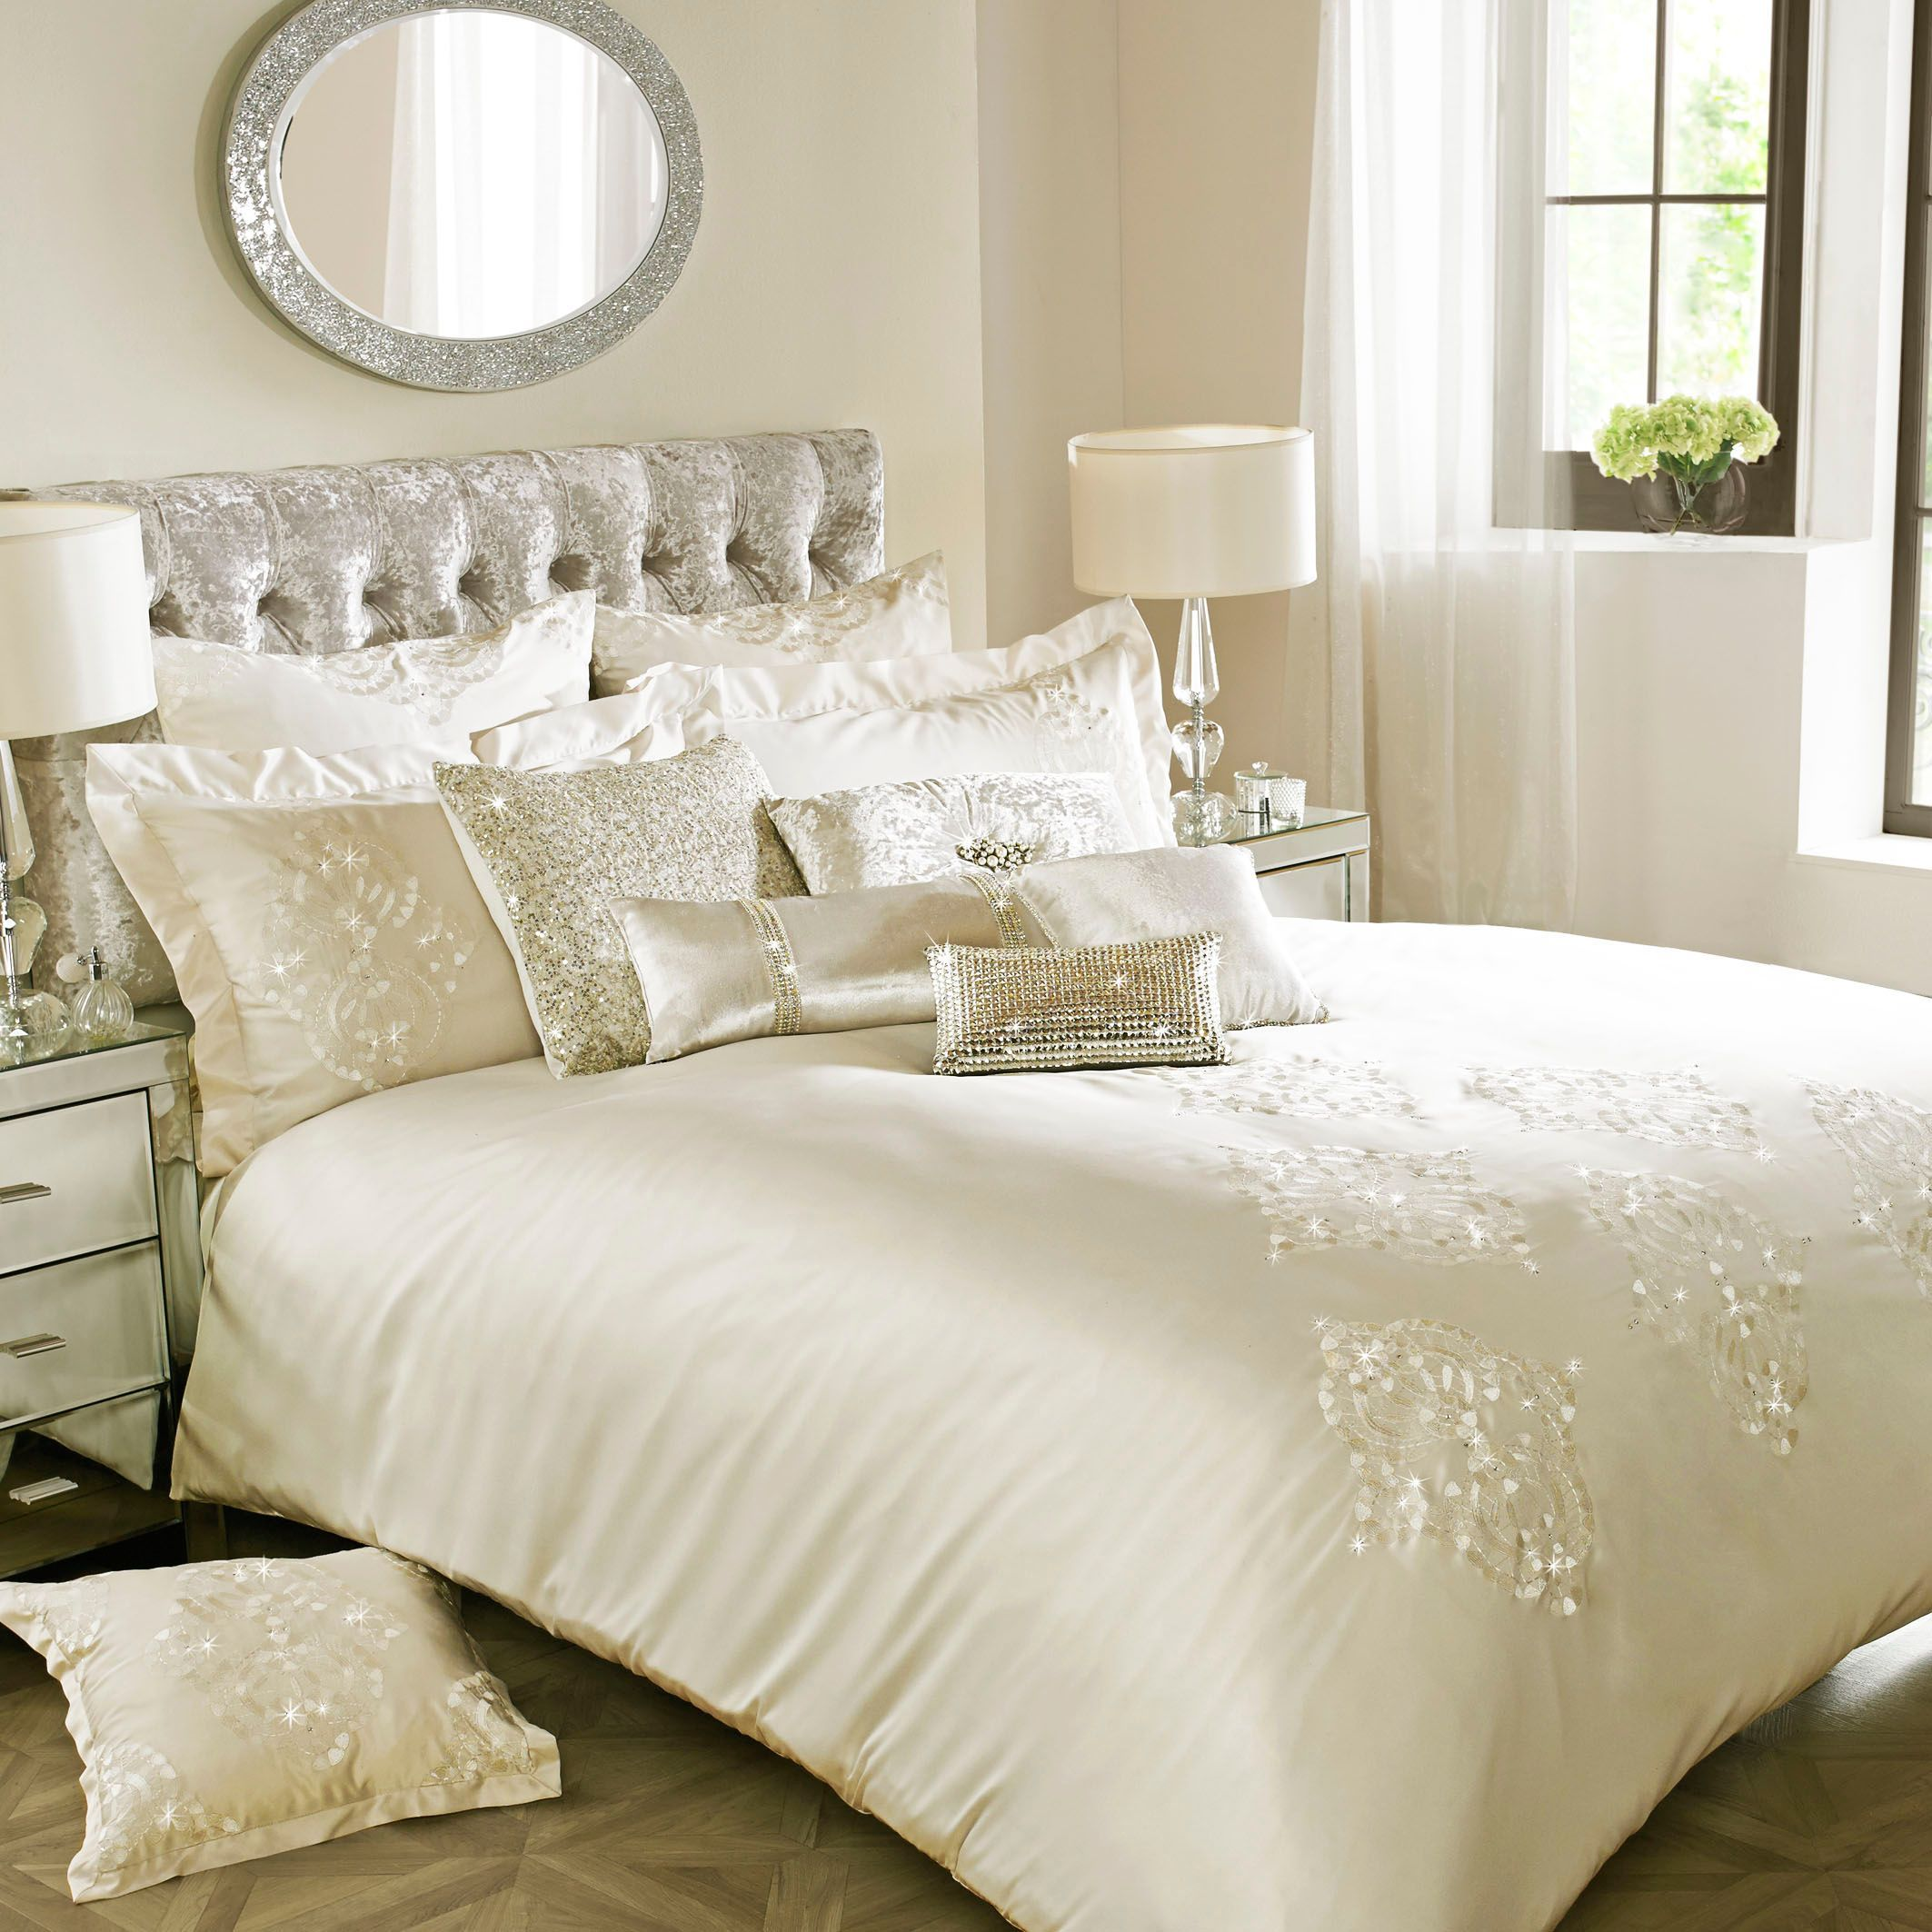 Kylie Minogue Chandelier King Duvet Cover House Of Fraser